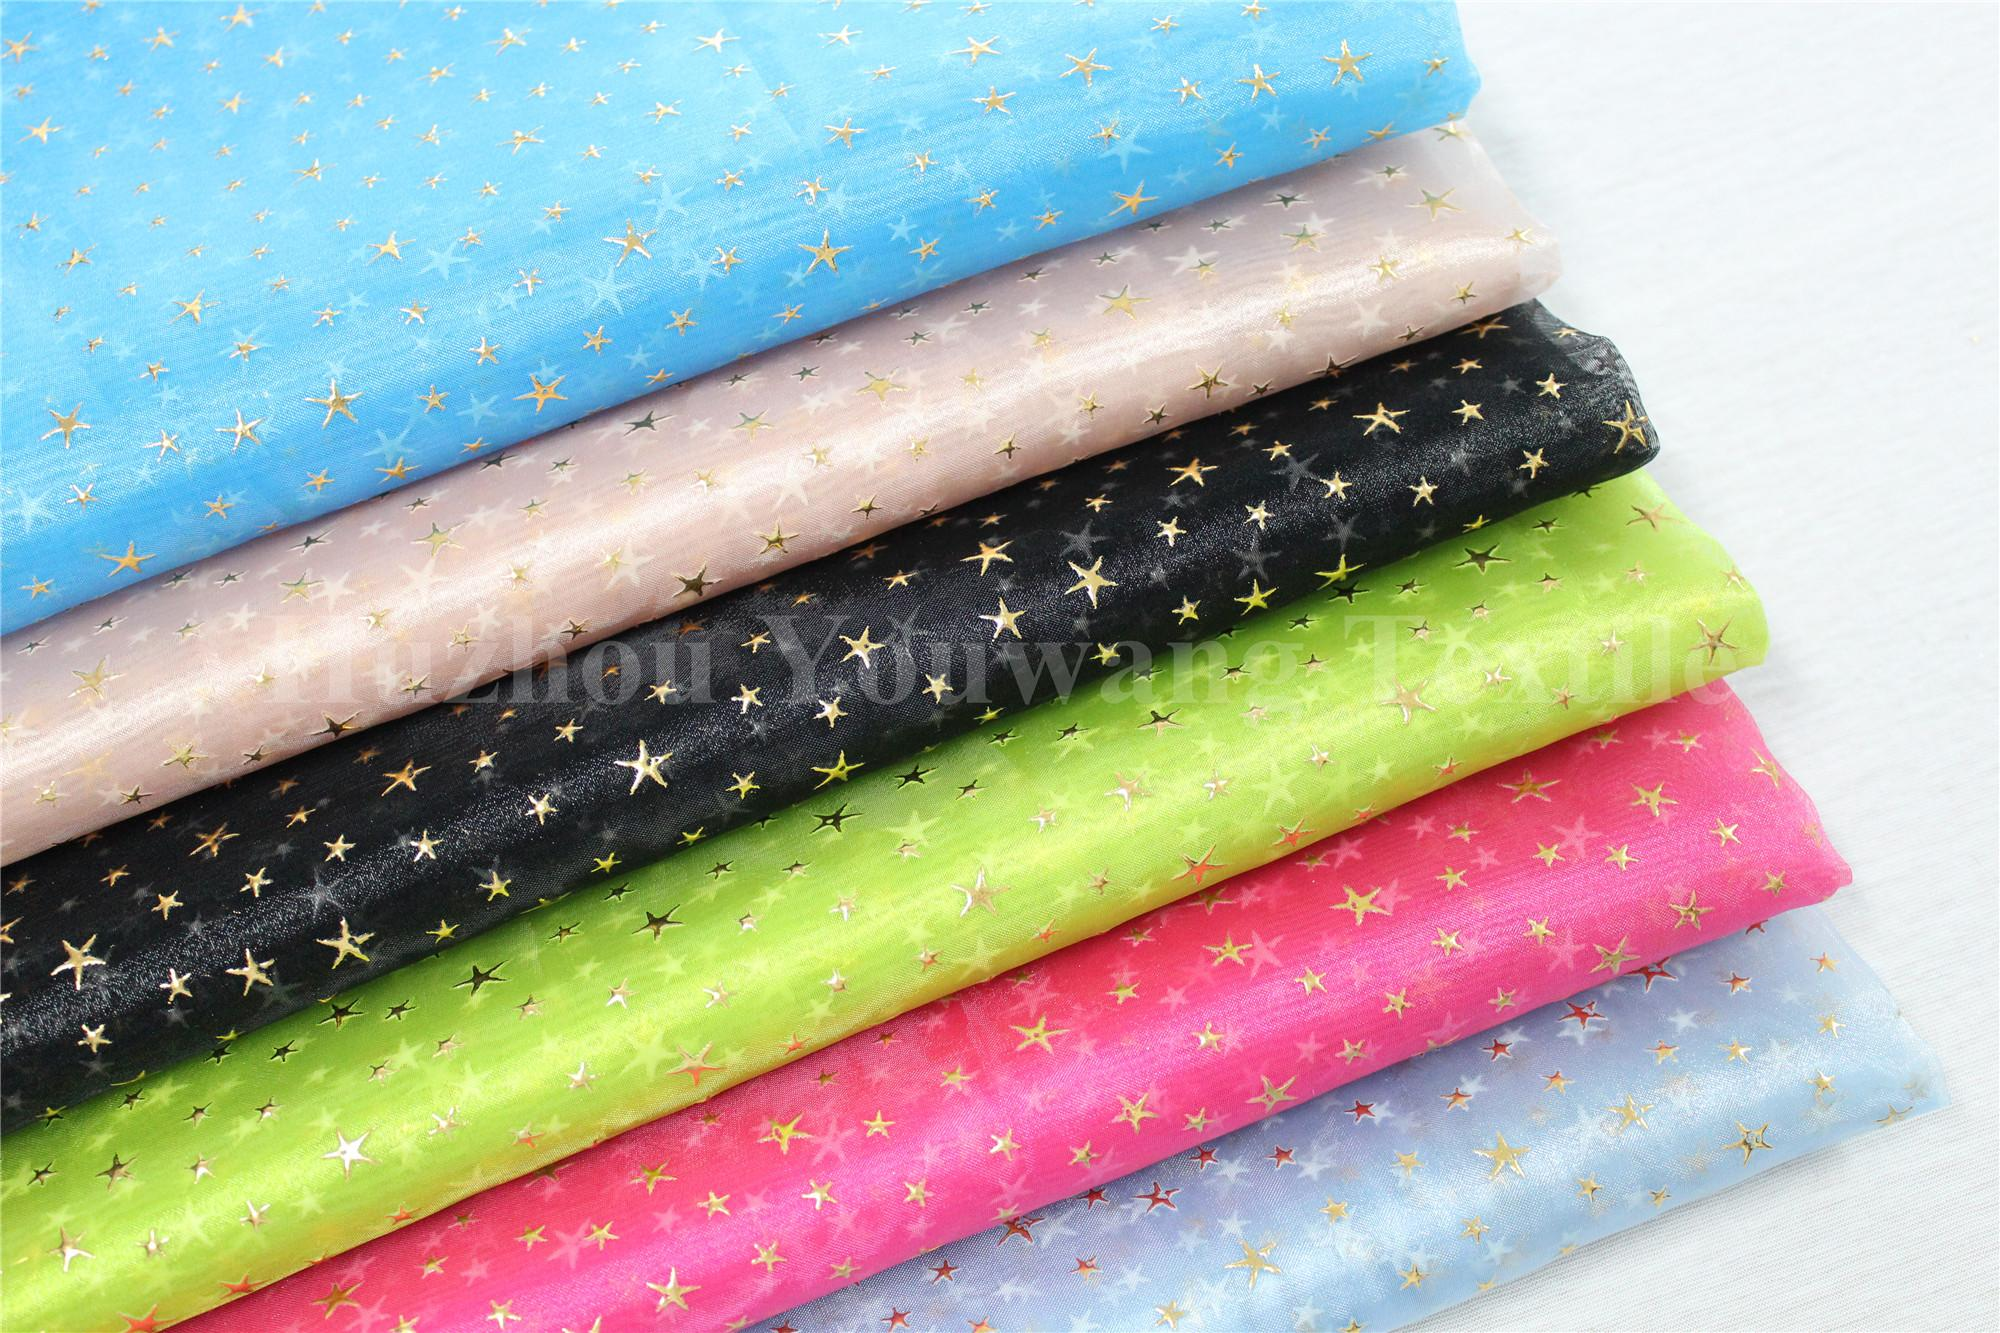 Star Design Crystal Organza Fabric 1